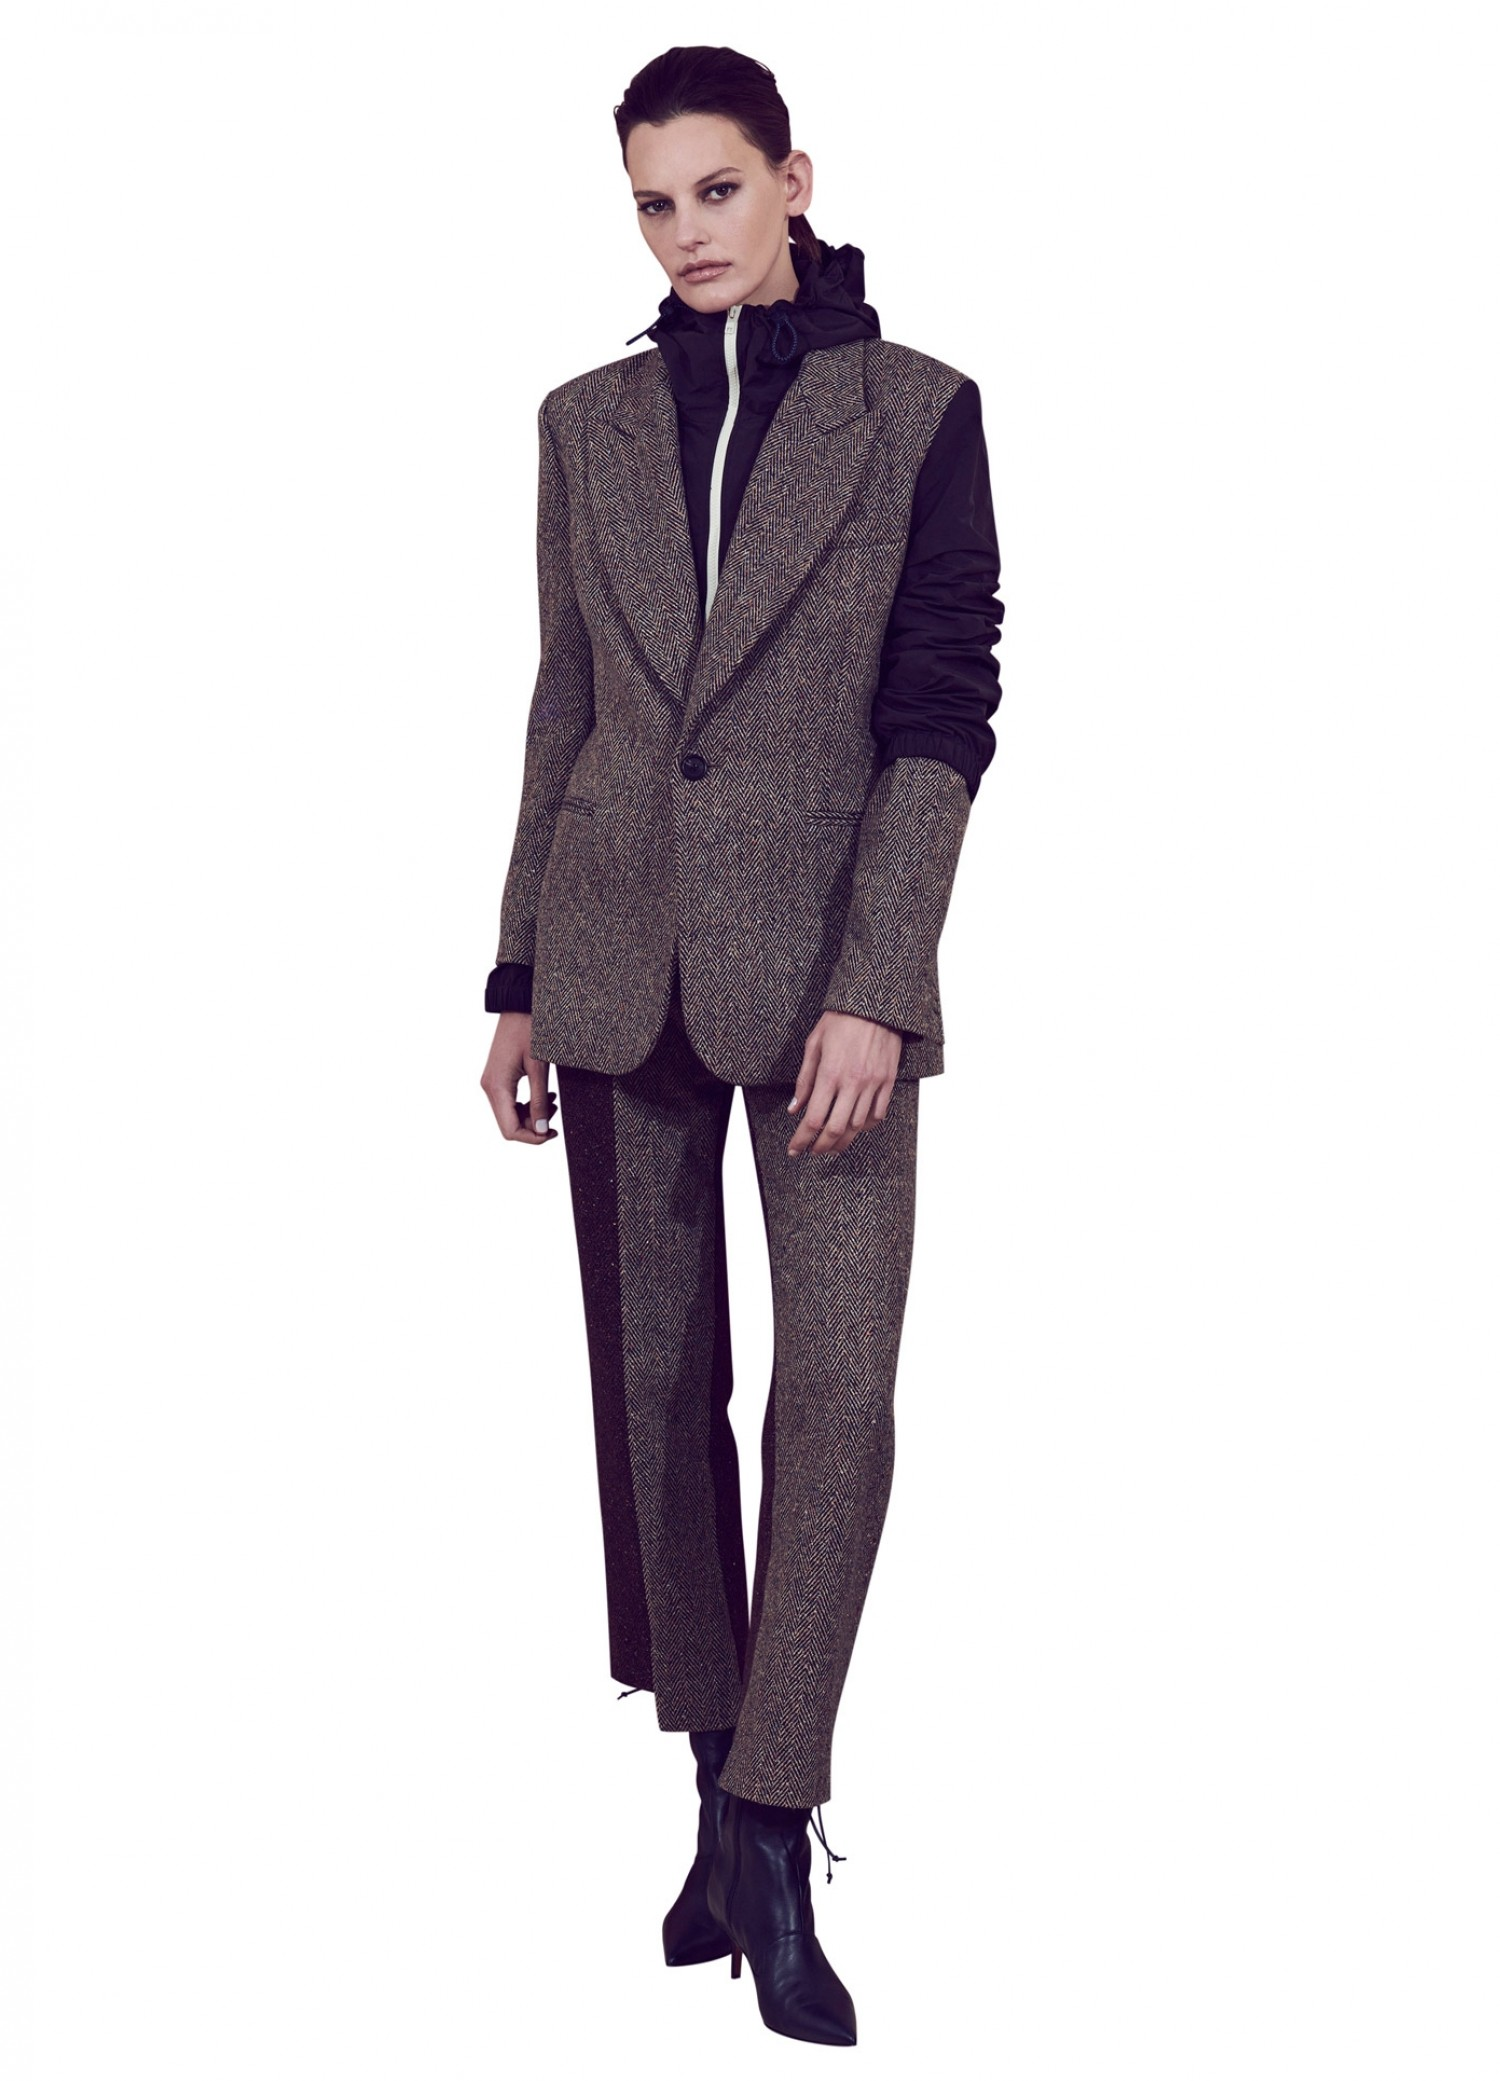 MONSE Herringbone Nylon Double Blazer on Model Front View